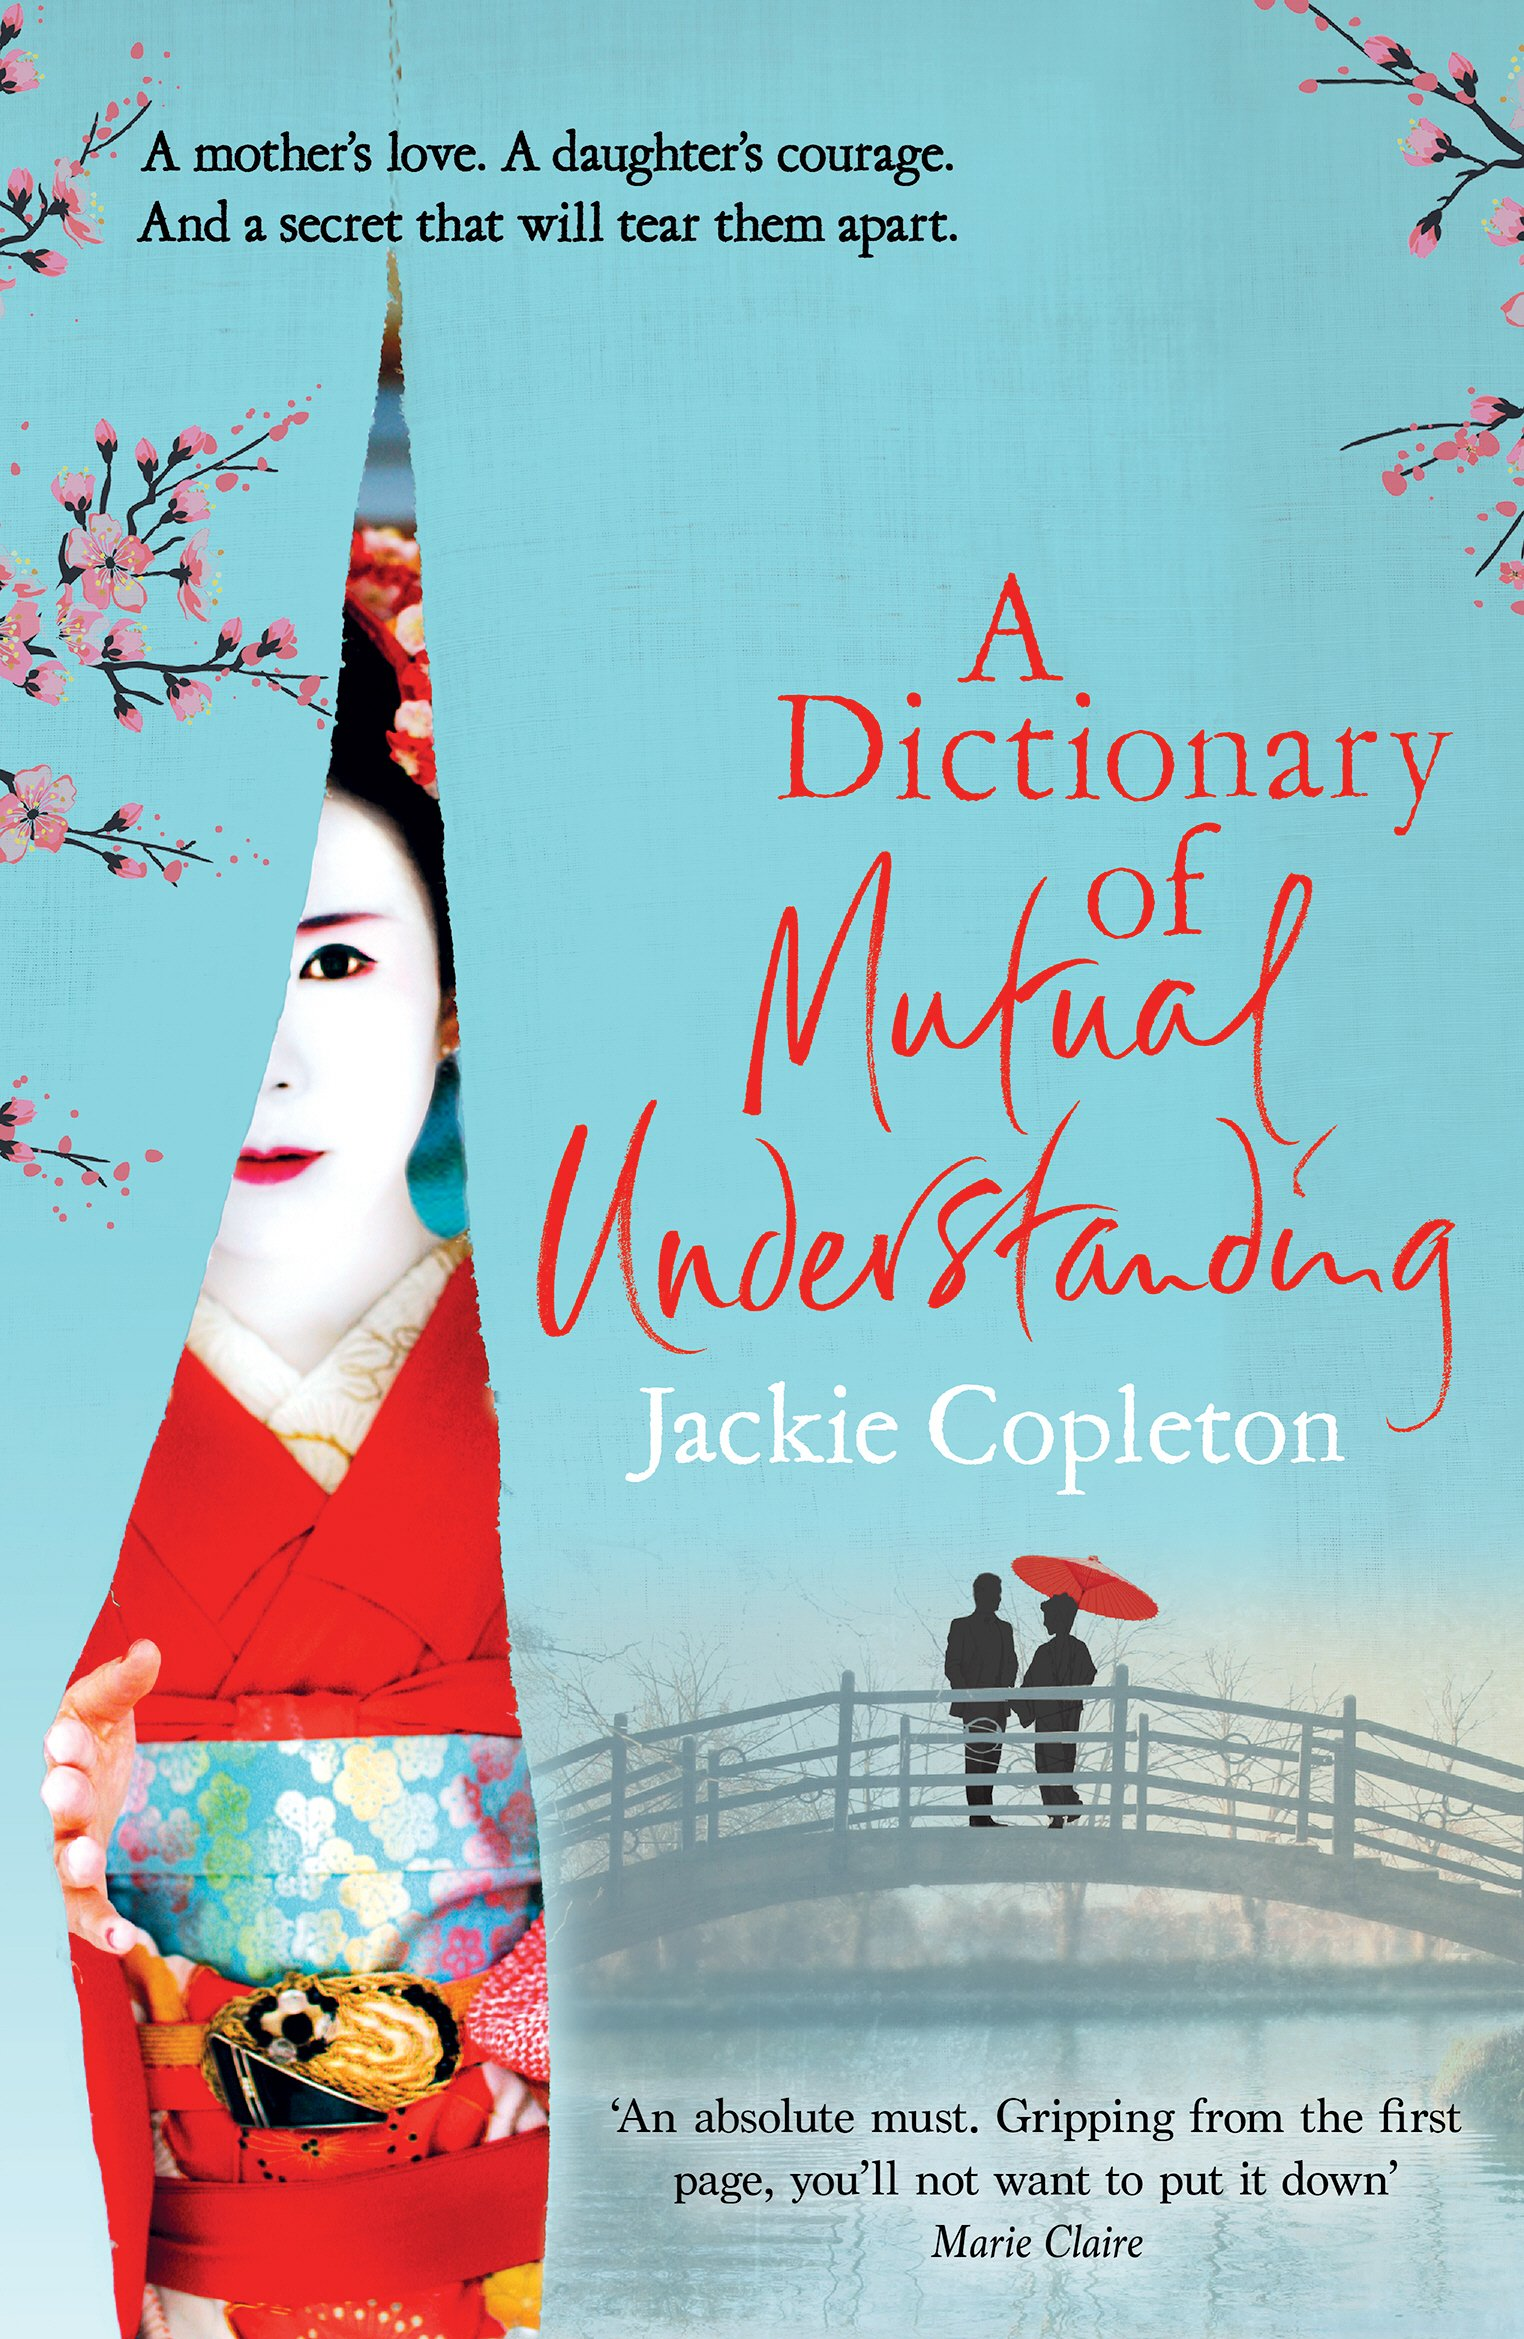 A dictionary of mutual understanding jackie copleton